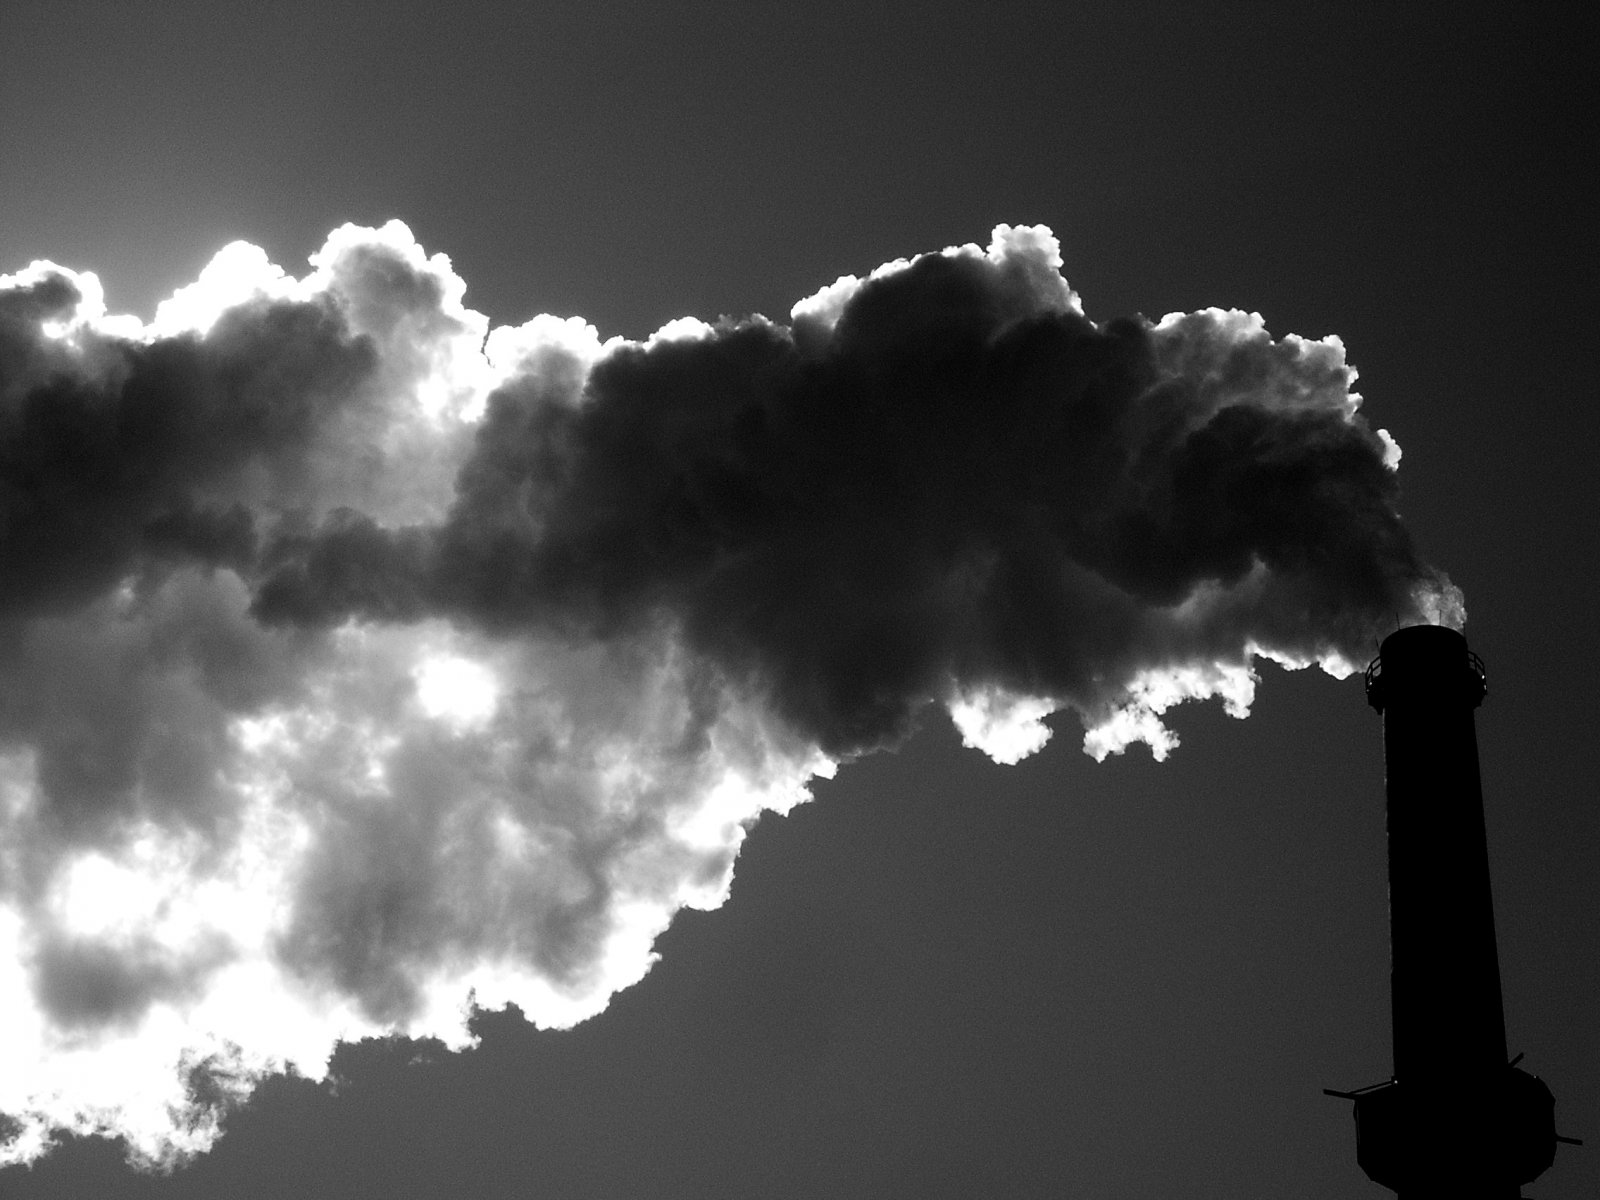 States may choose to join a carbon trading program to comply with Clean Power Plan rules